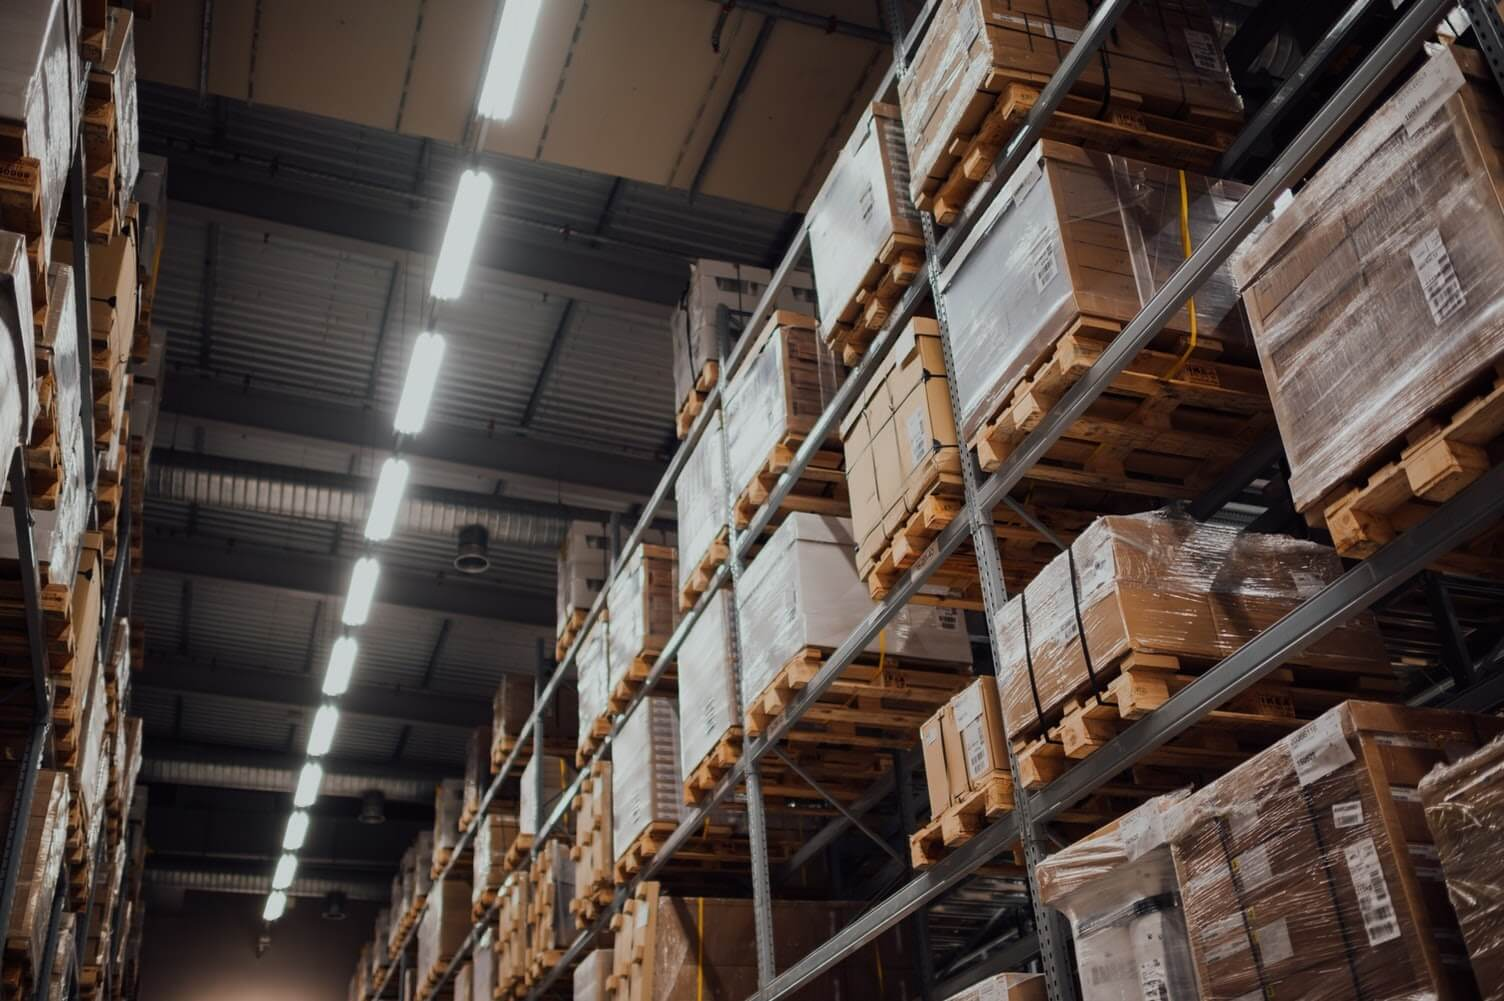 A photo of inventory boxes within a warehouse.